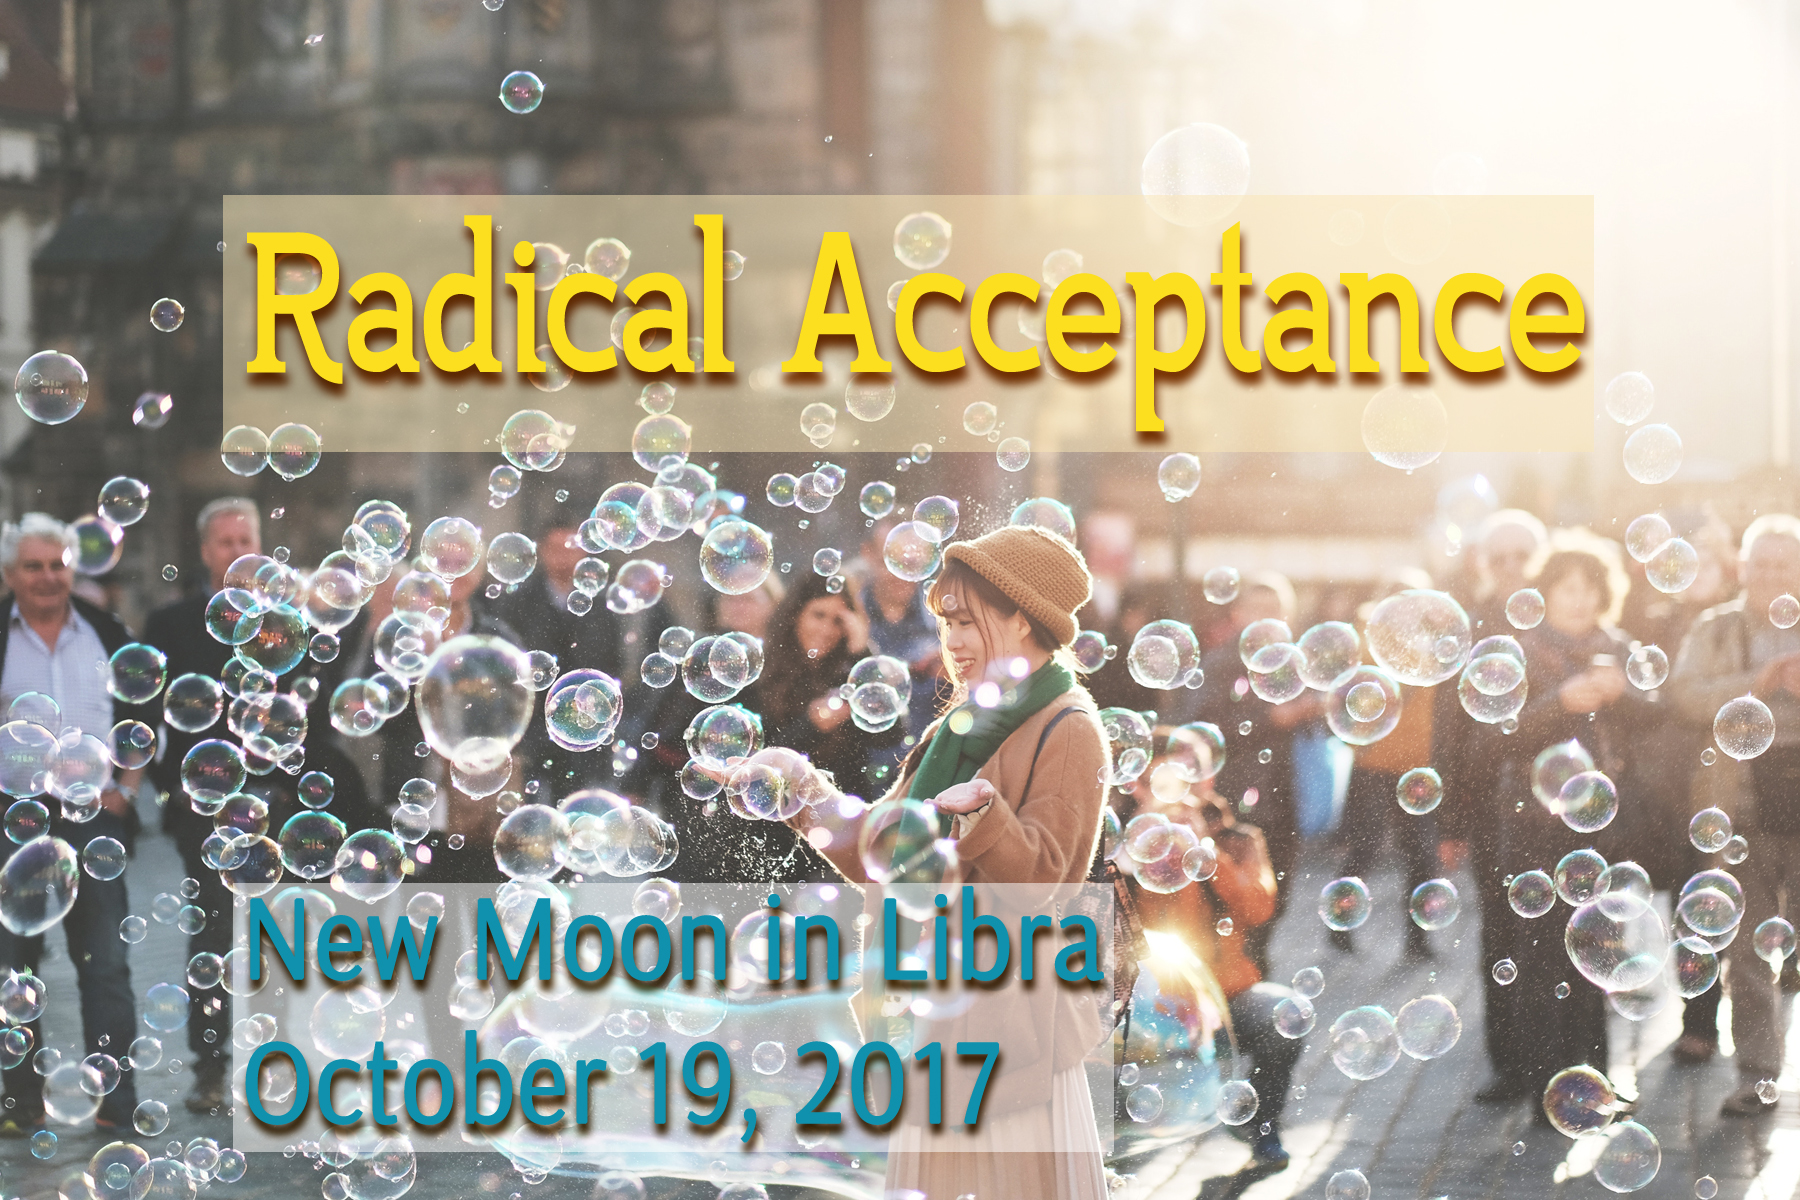 New Moon in Libra: Radical Acceptance